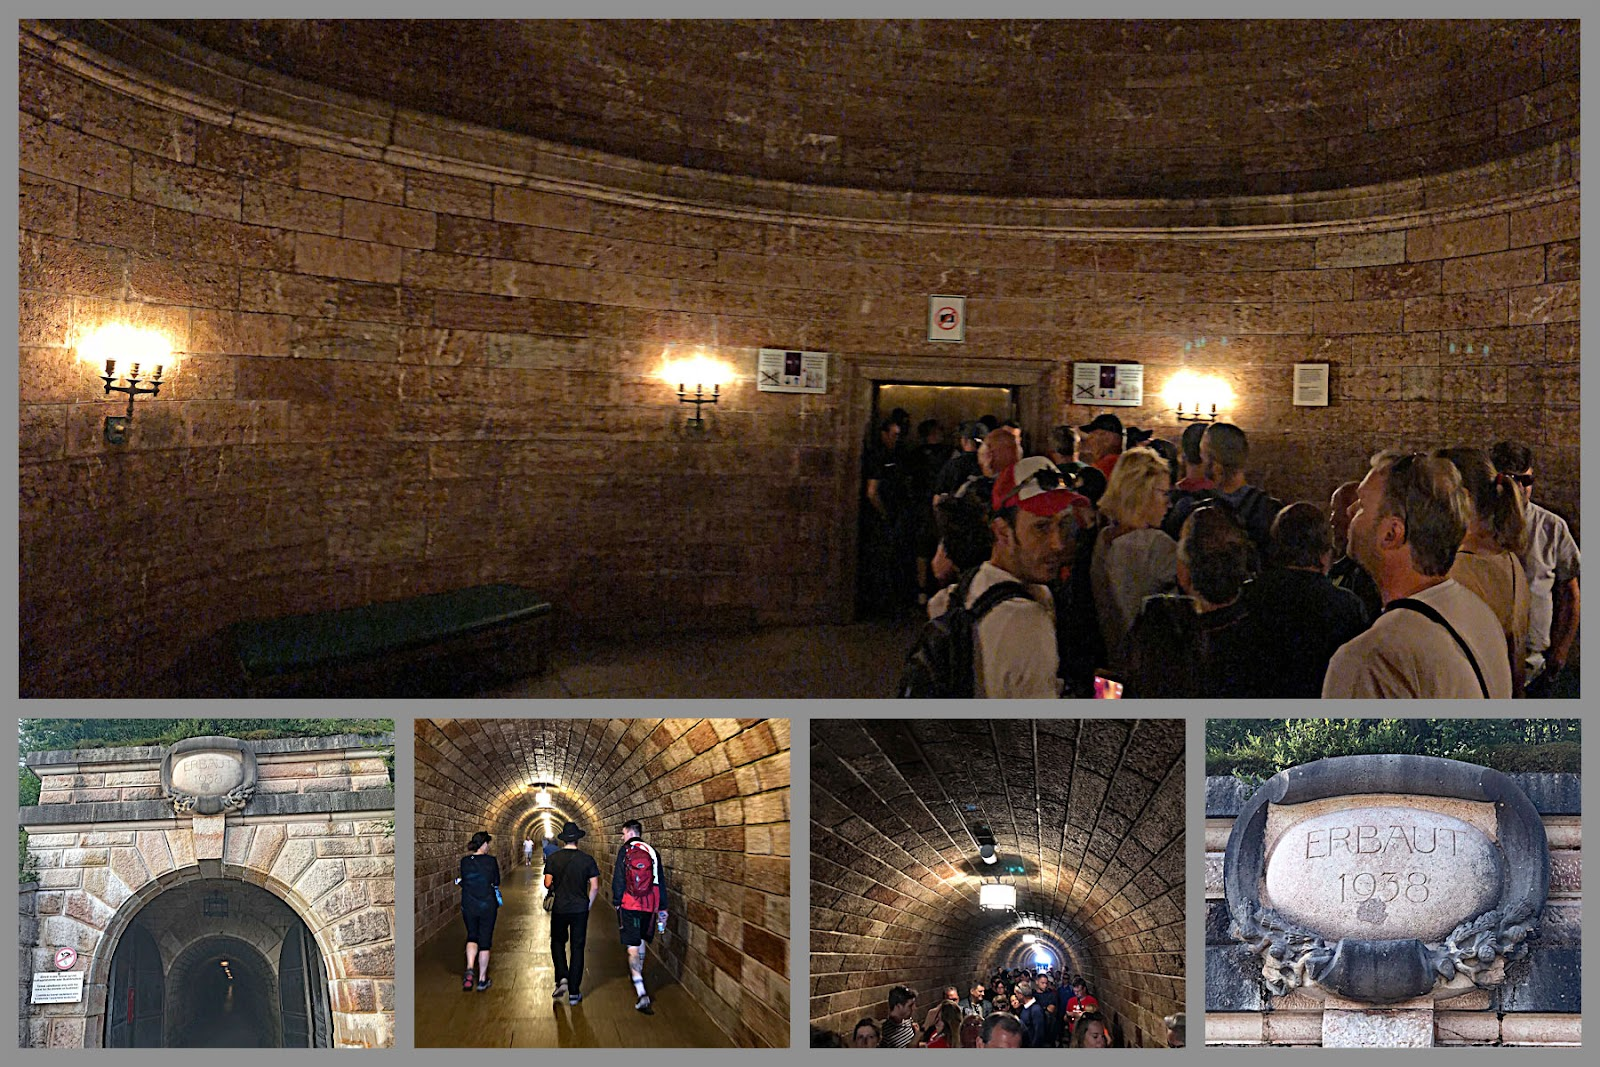 Bicycle ride to Kehlsteinhaus - Eagles Nest - tunnel to elevator